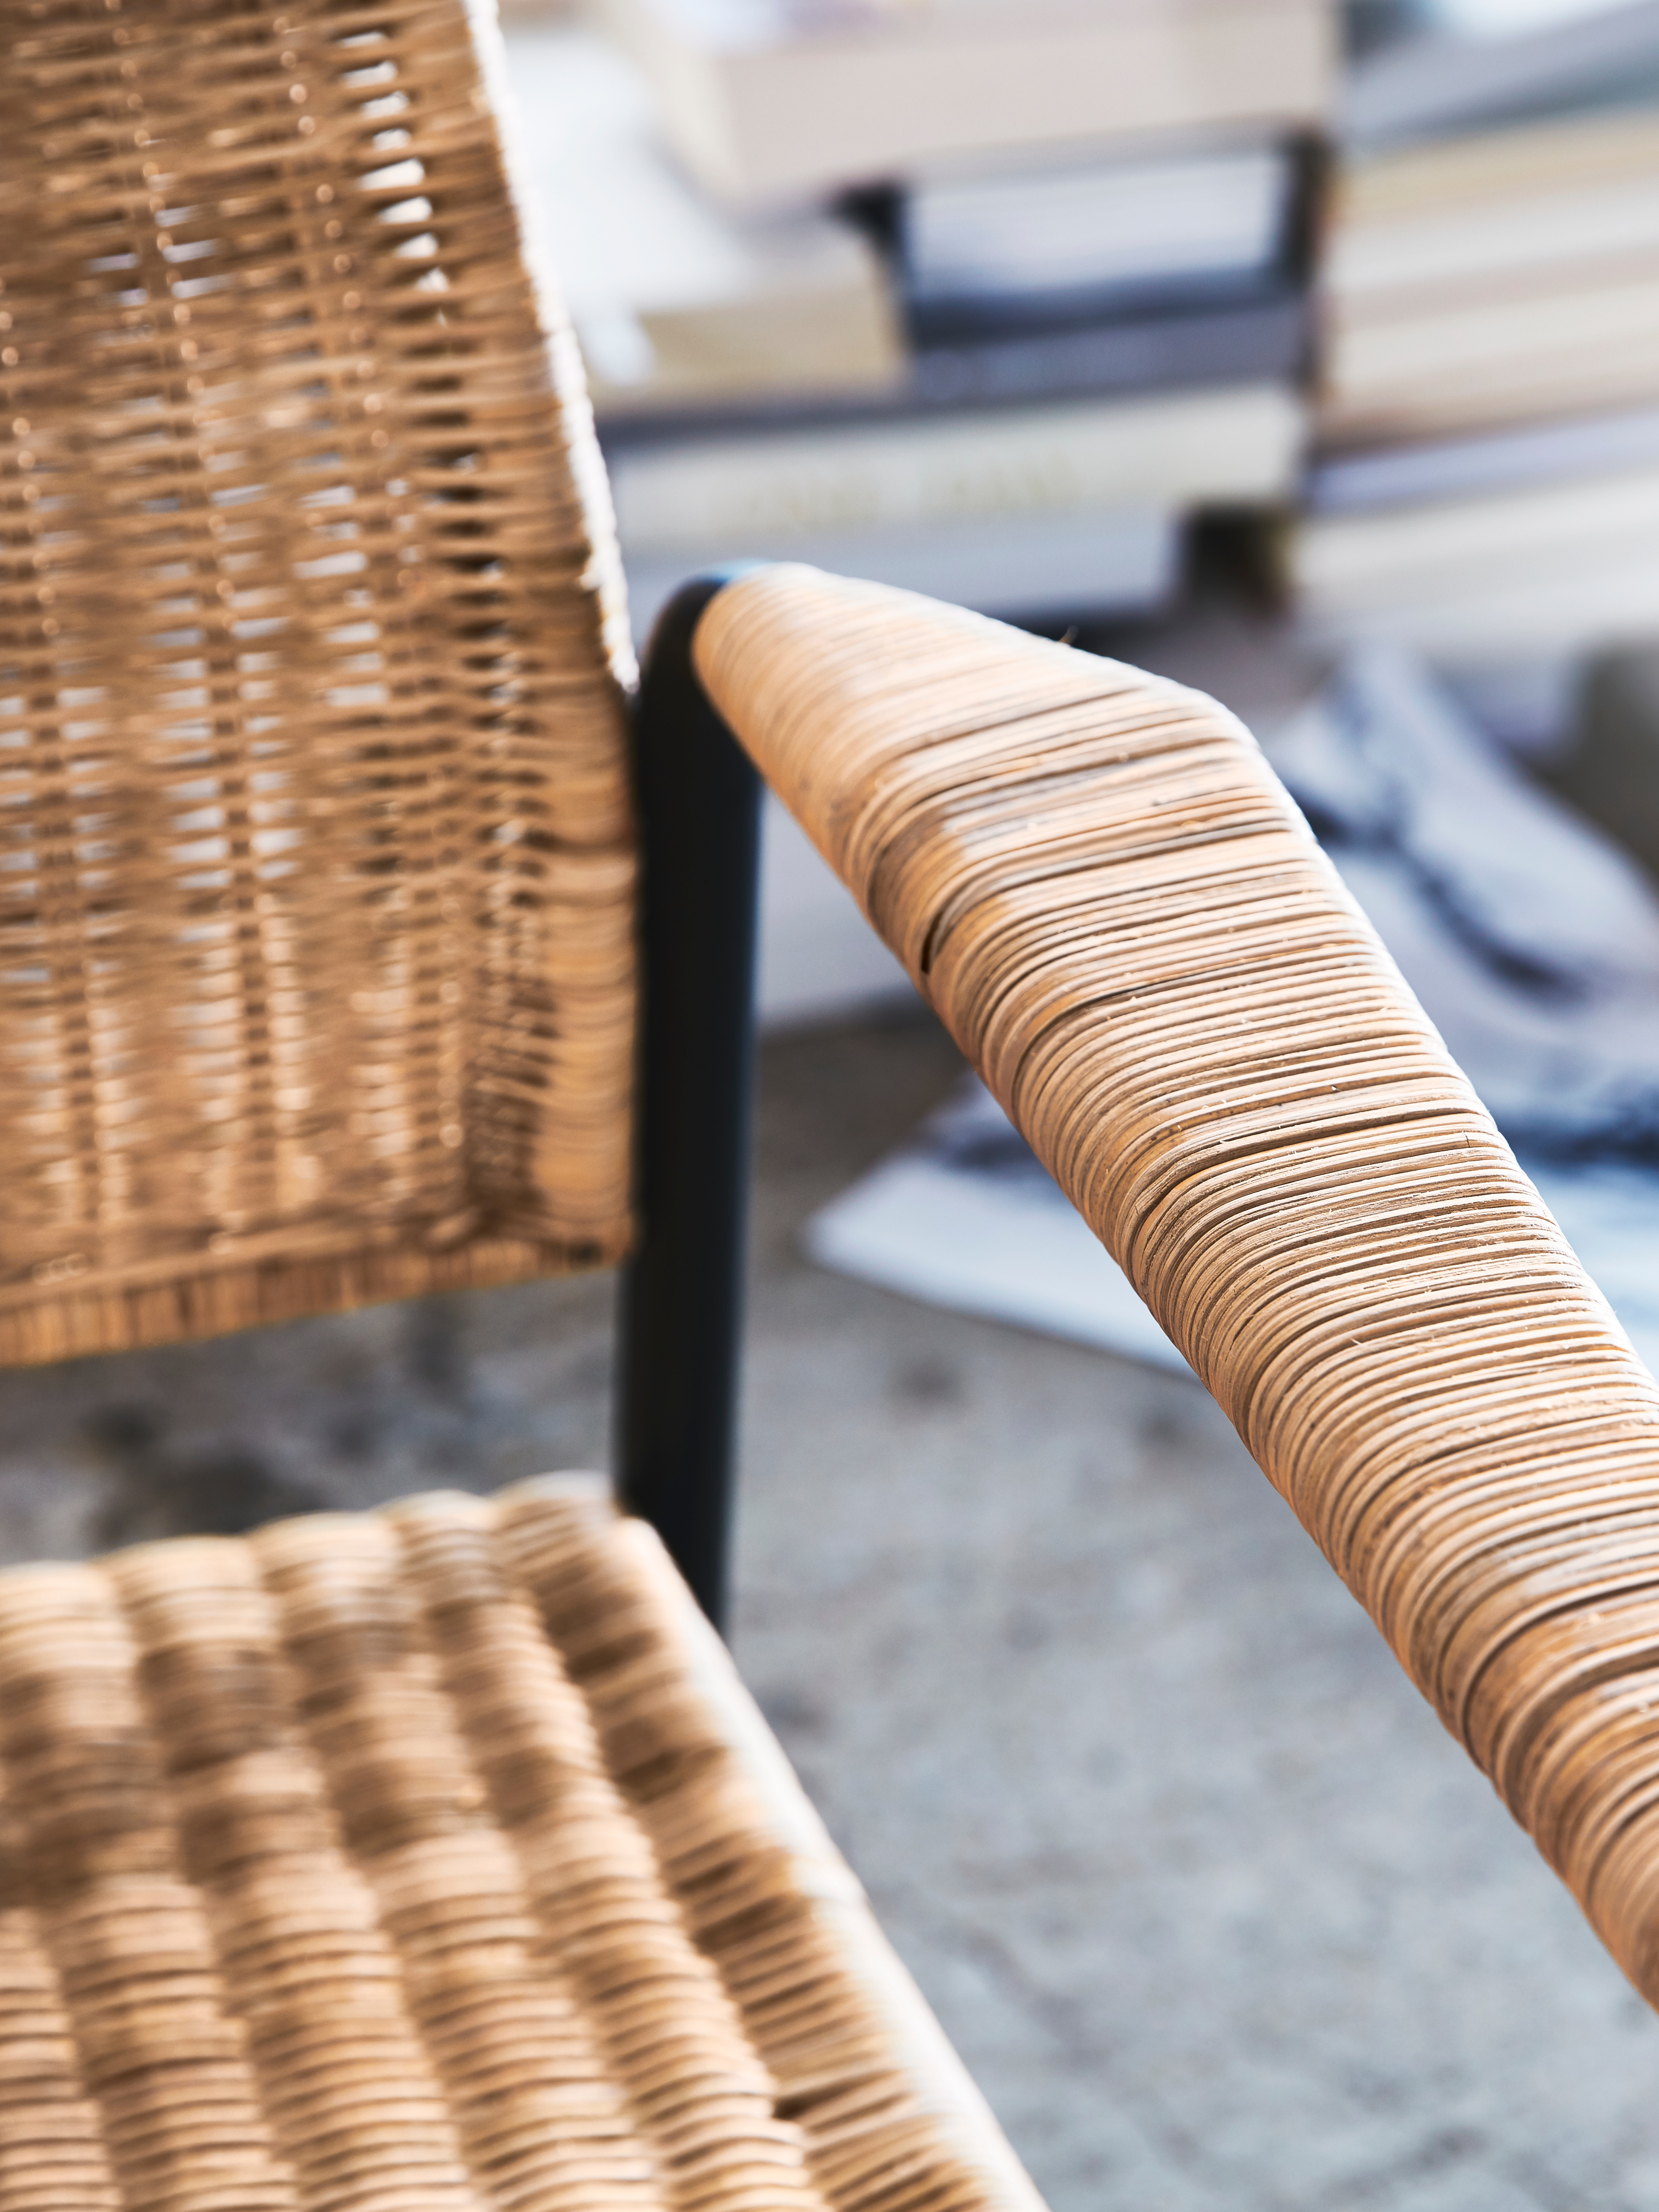 A close-up of the back, seat and armrest of ULRIKSBERG armchair in rattan/anthracite, showing rattan on a coated-steel frame.